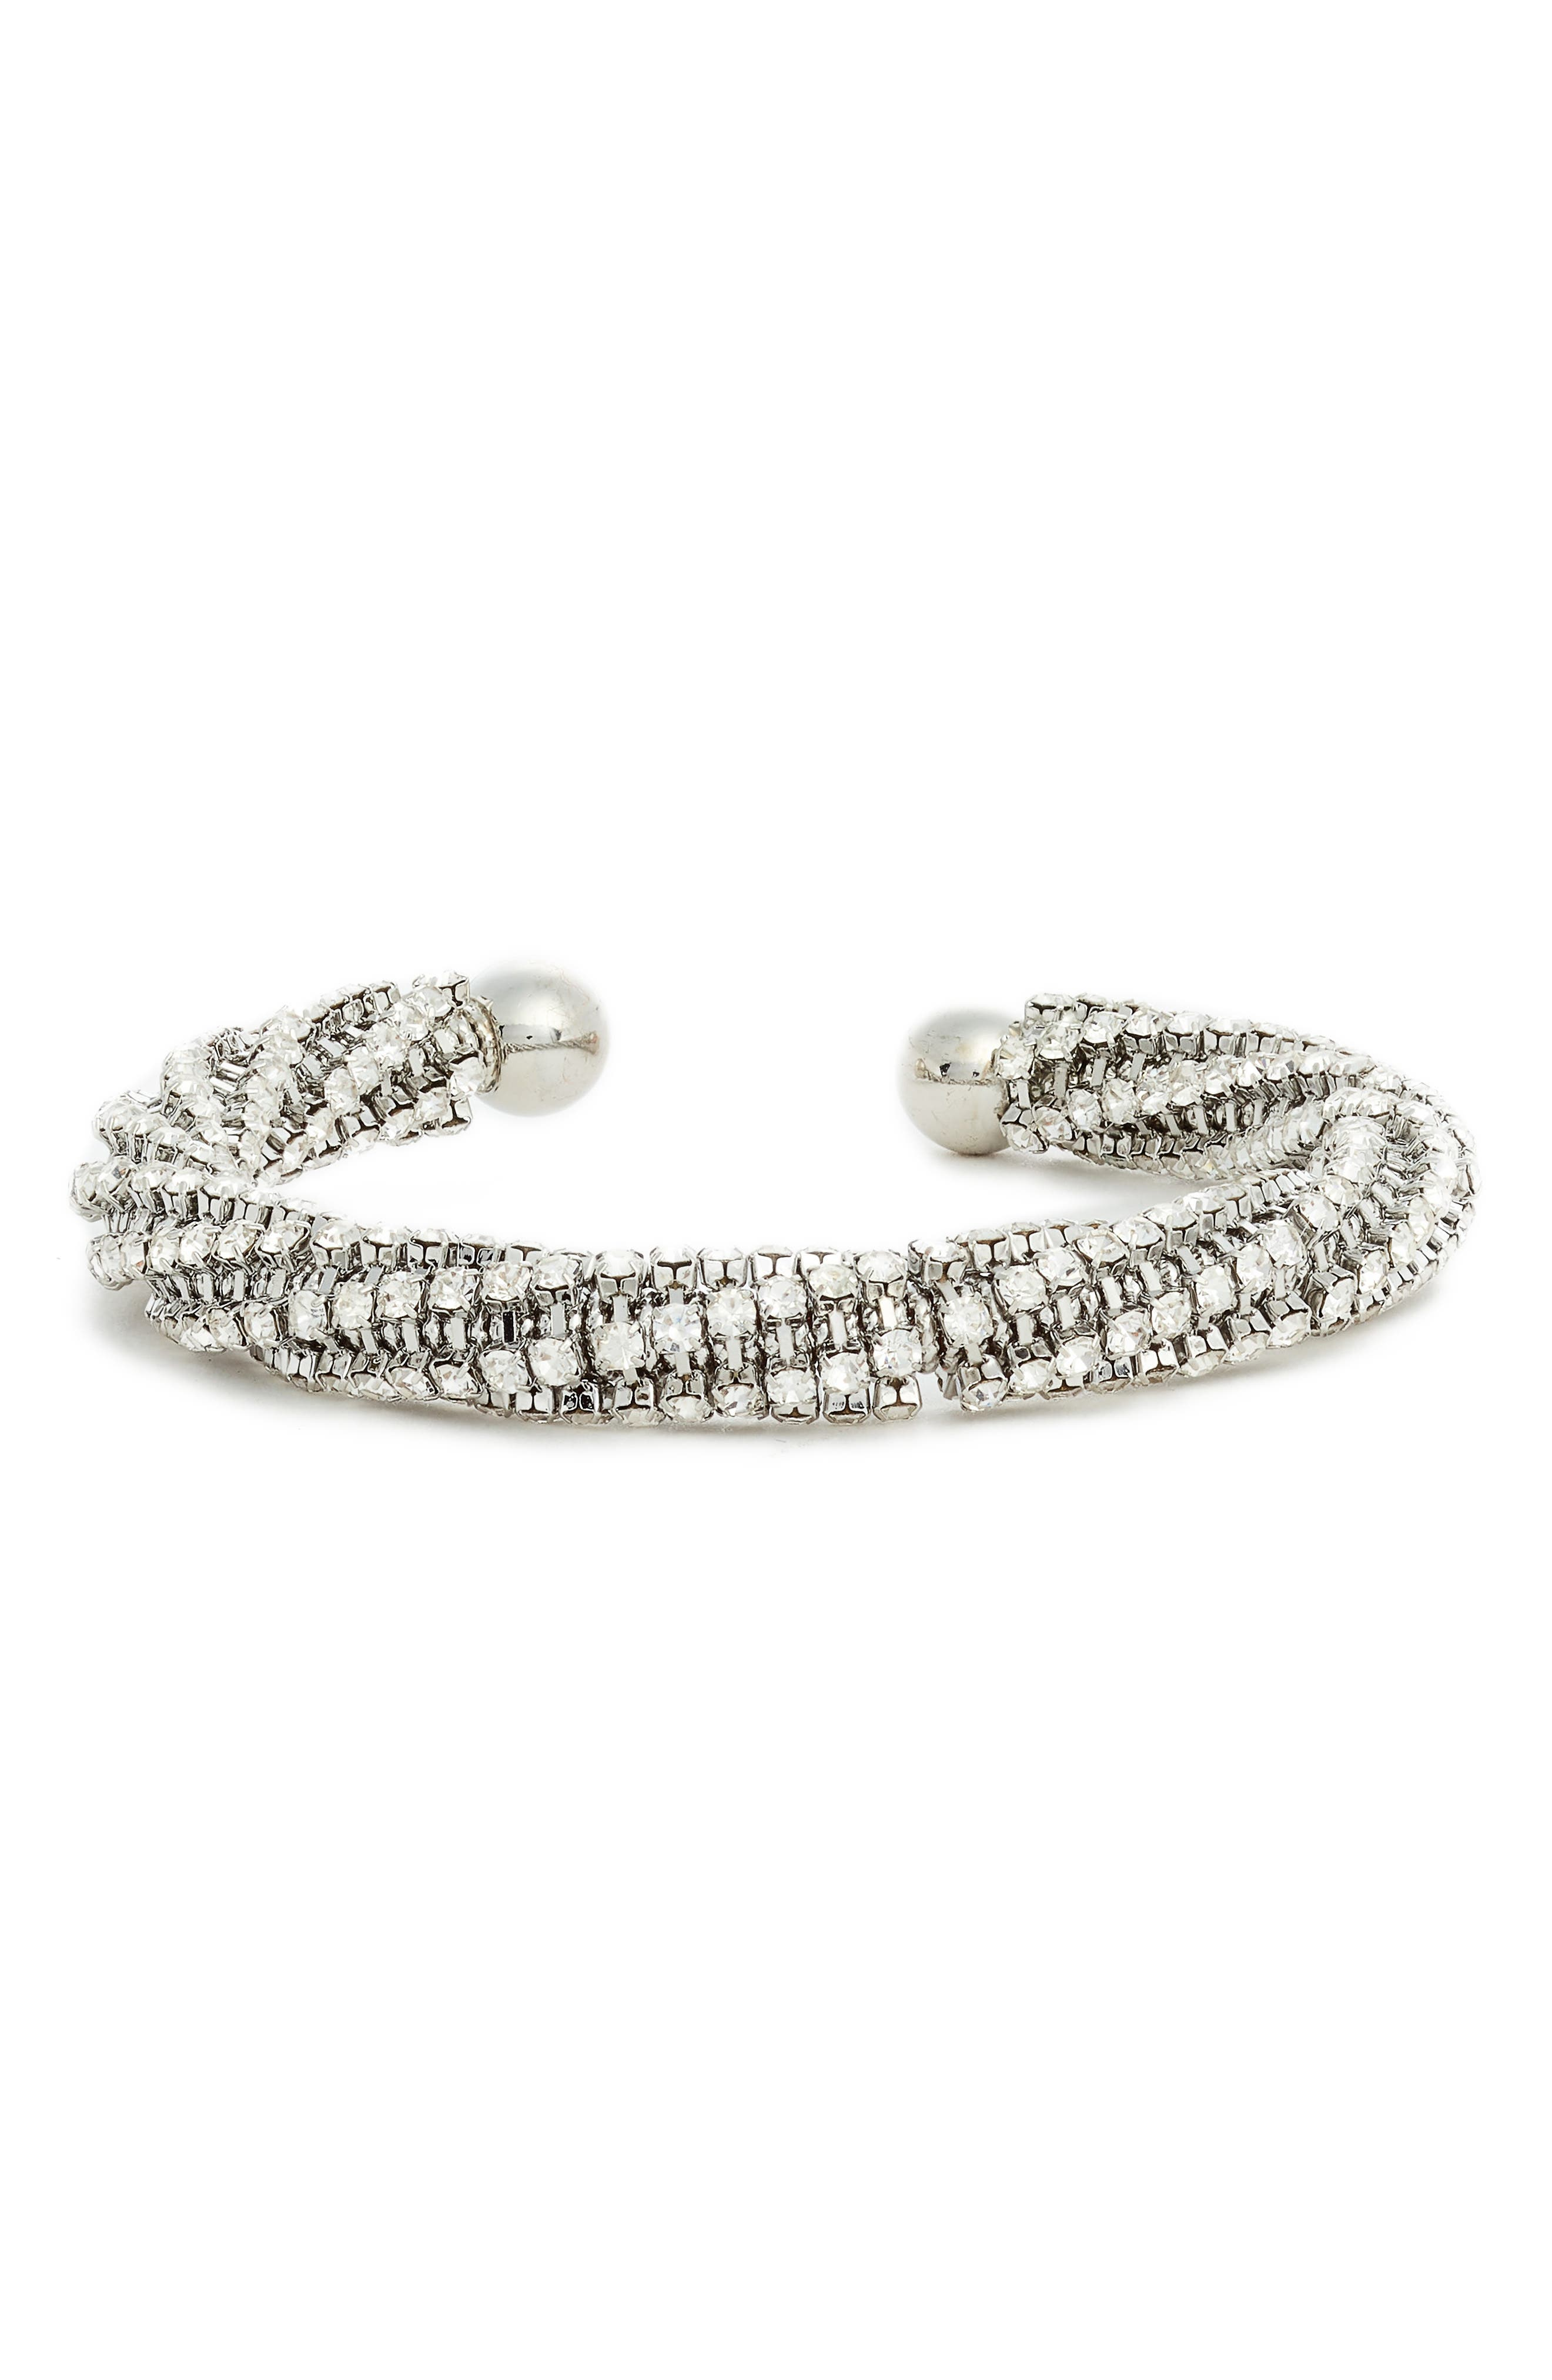 Crystal Cuff Bracelet,                             Main thumbnail 1, color,                             SILVER